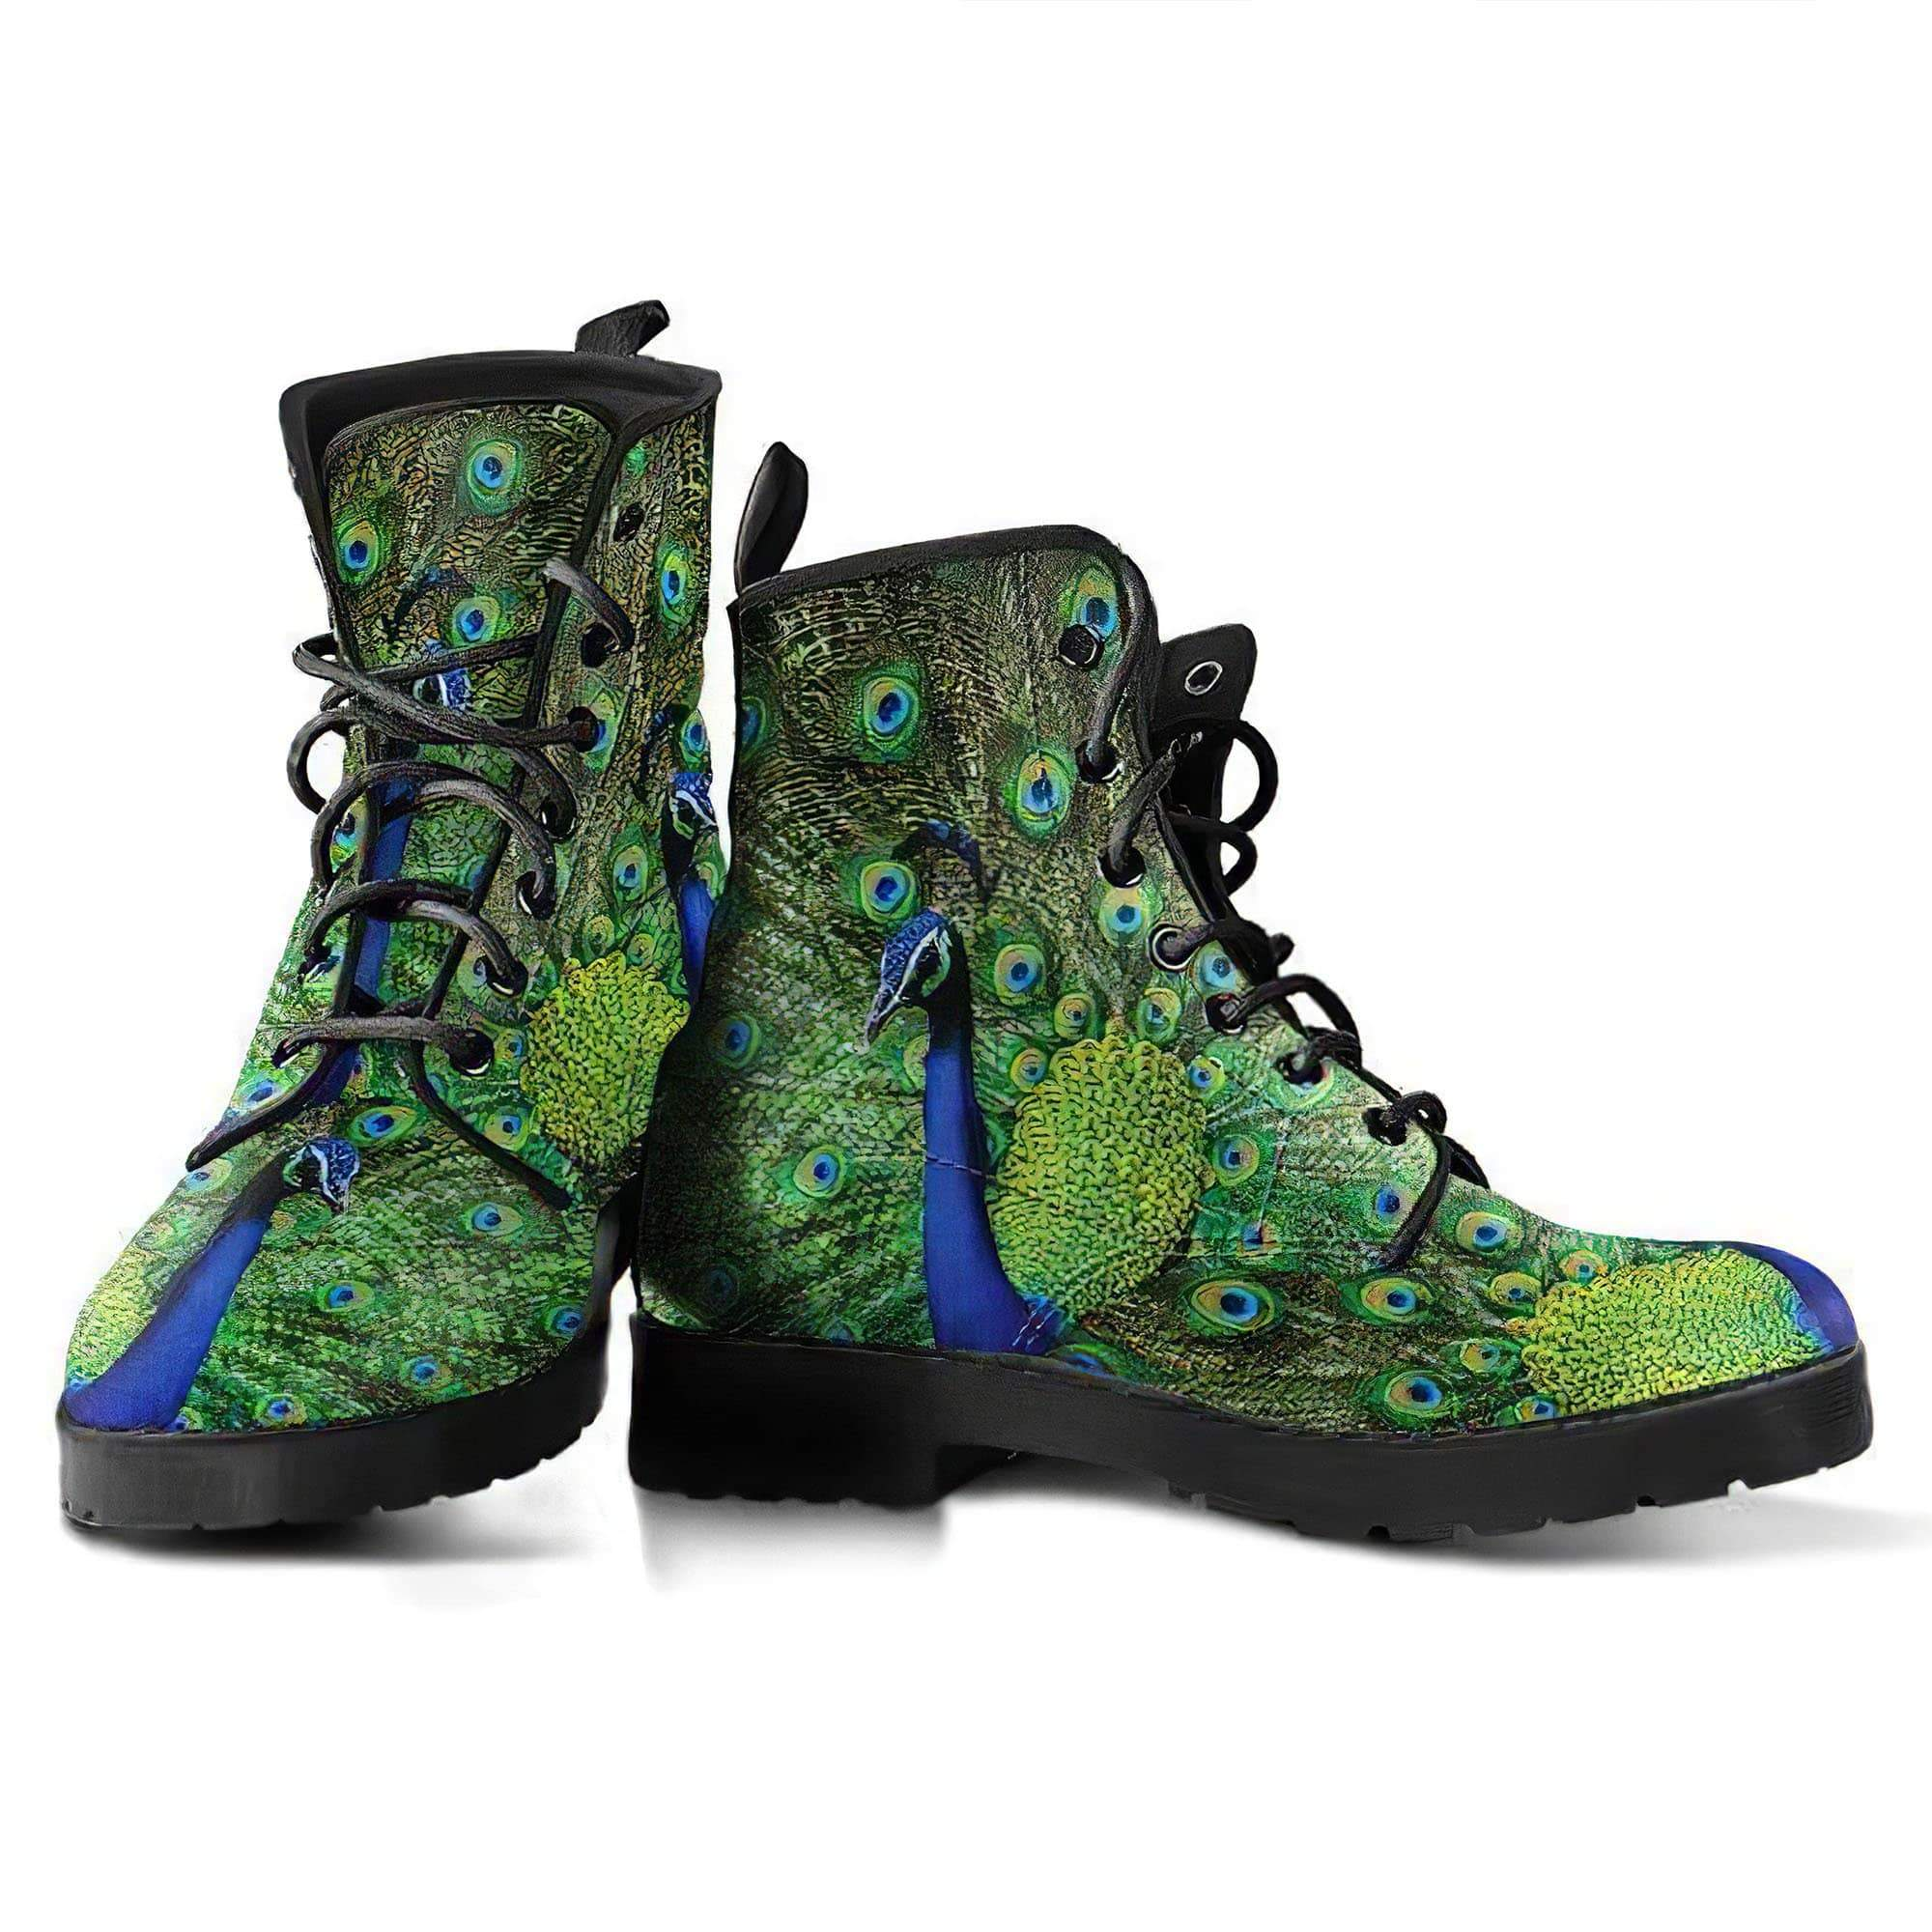 Peacock 4 Handcrafted Boots Women's Leather Boots